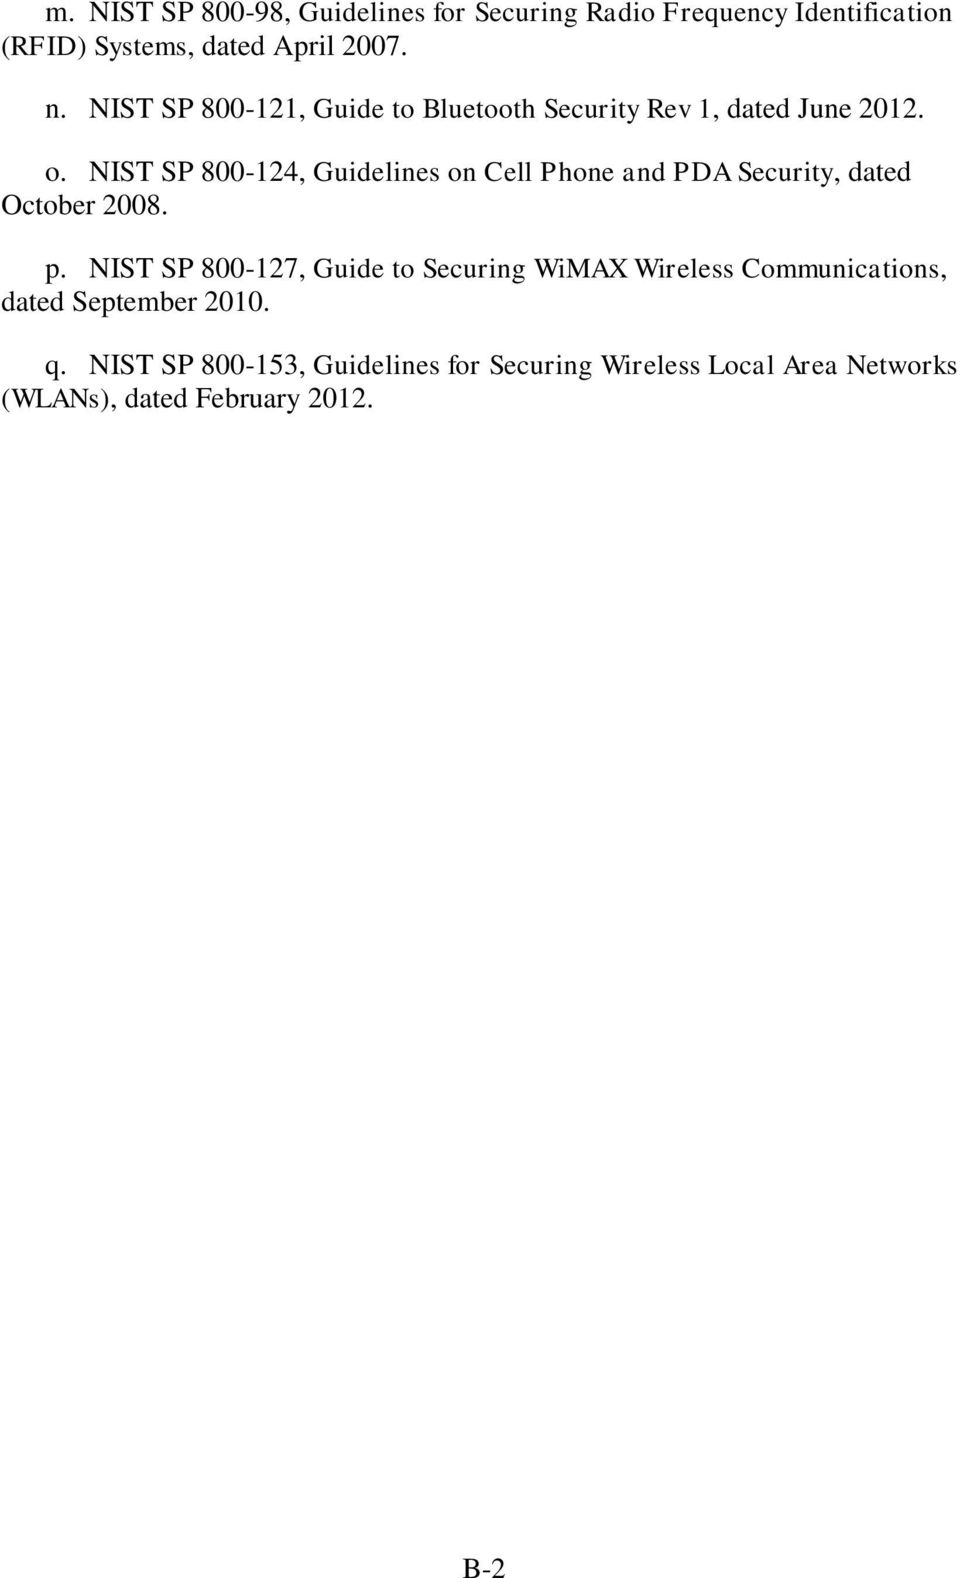 NIST SP 800-124, Guidelines on Cell Phone and PDA Security, dated October 2008. p.